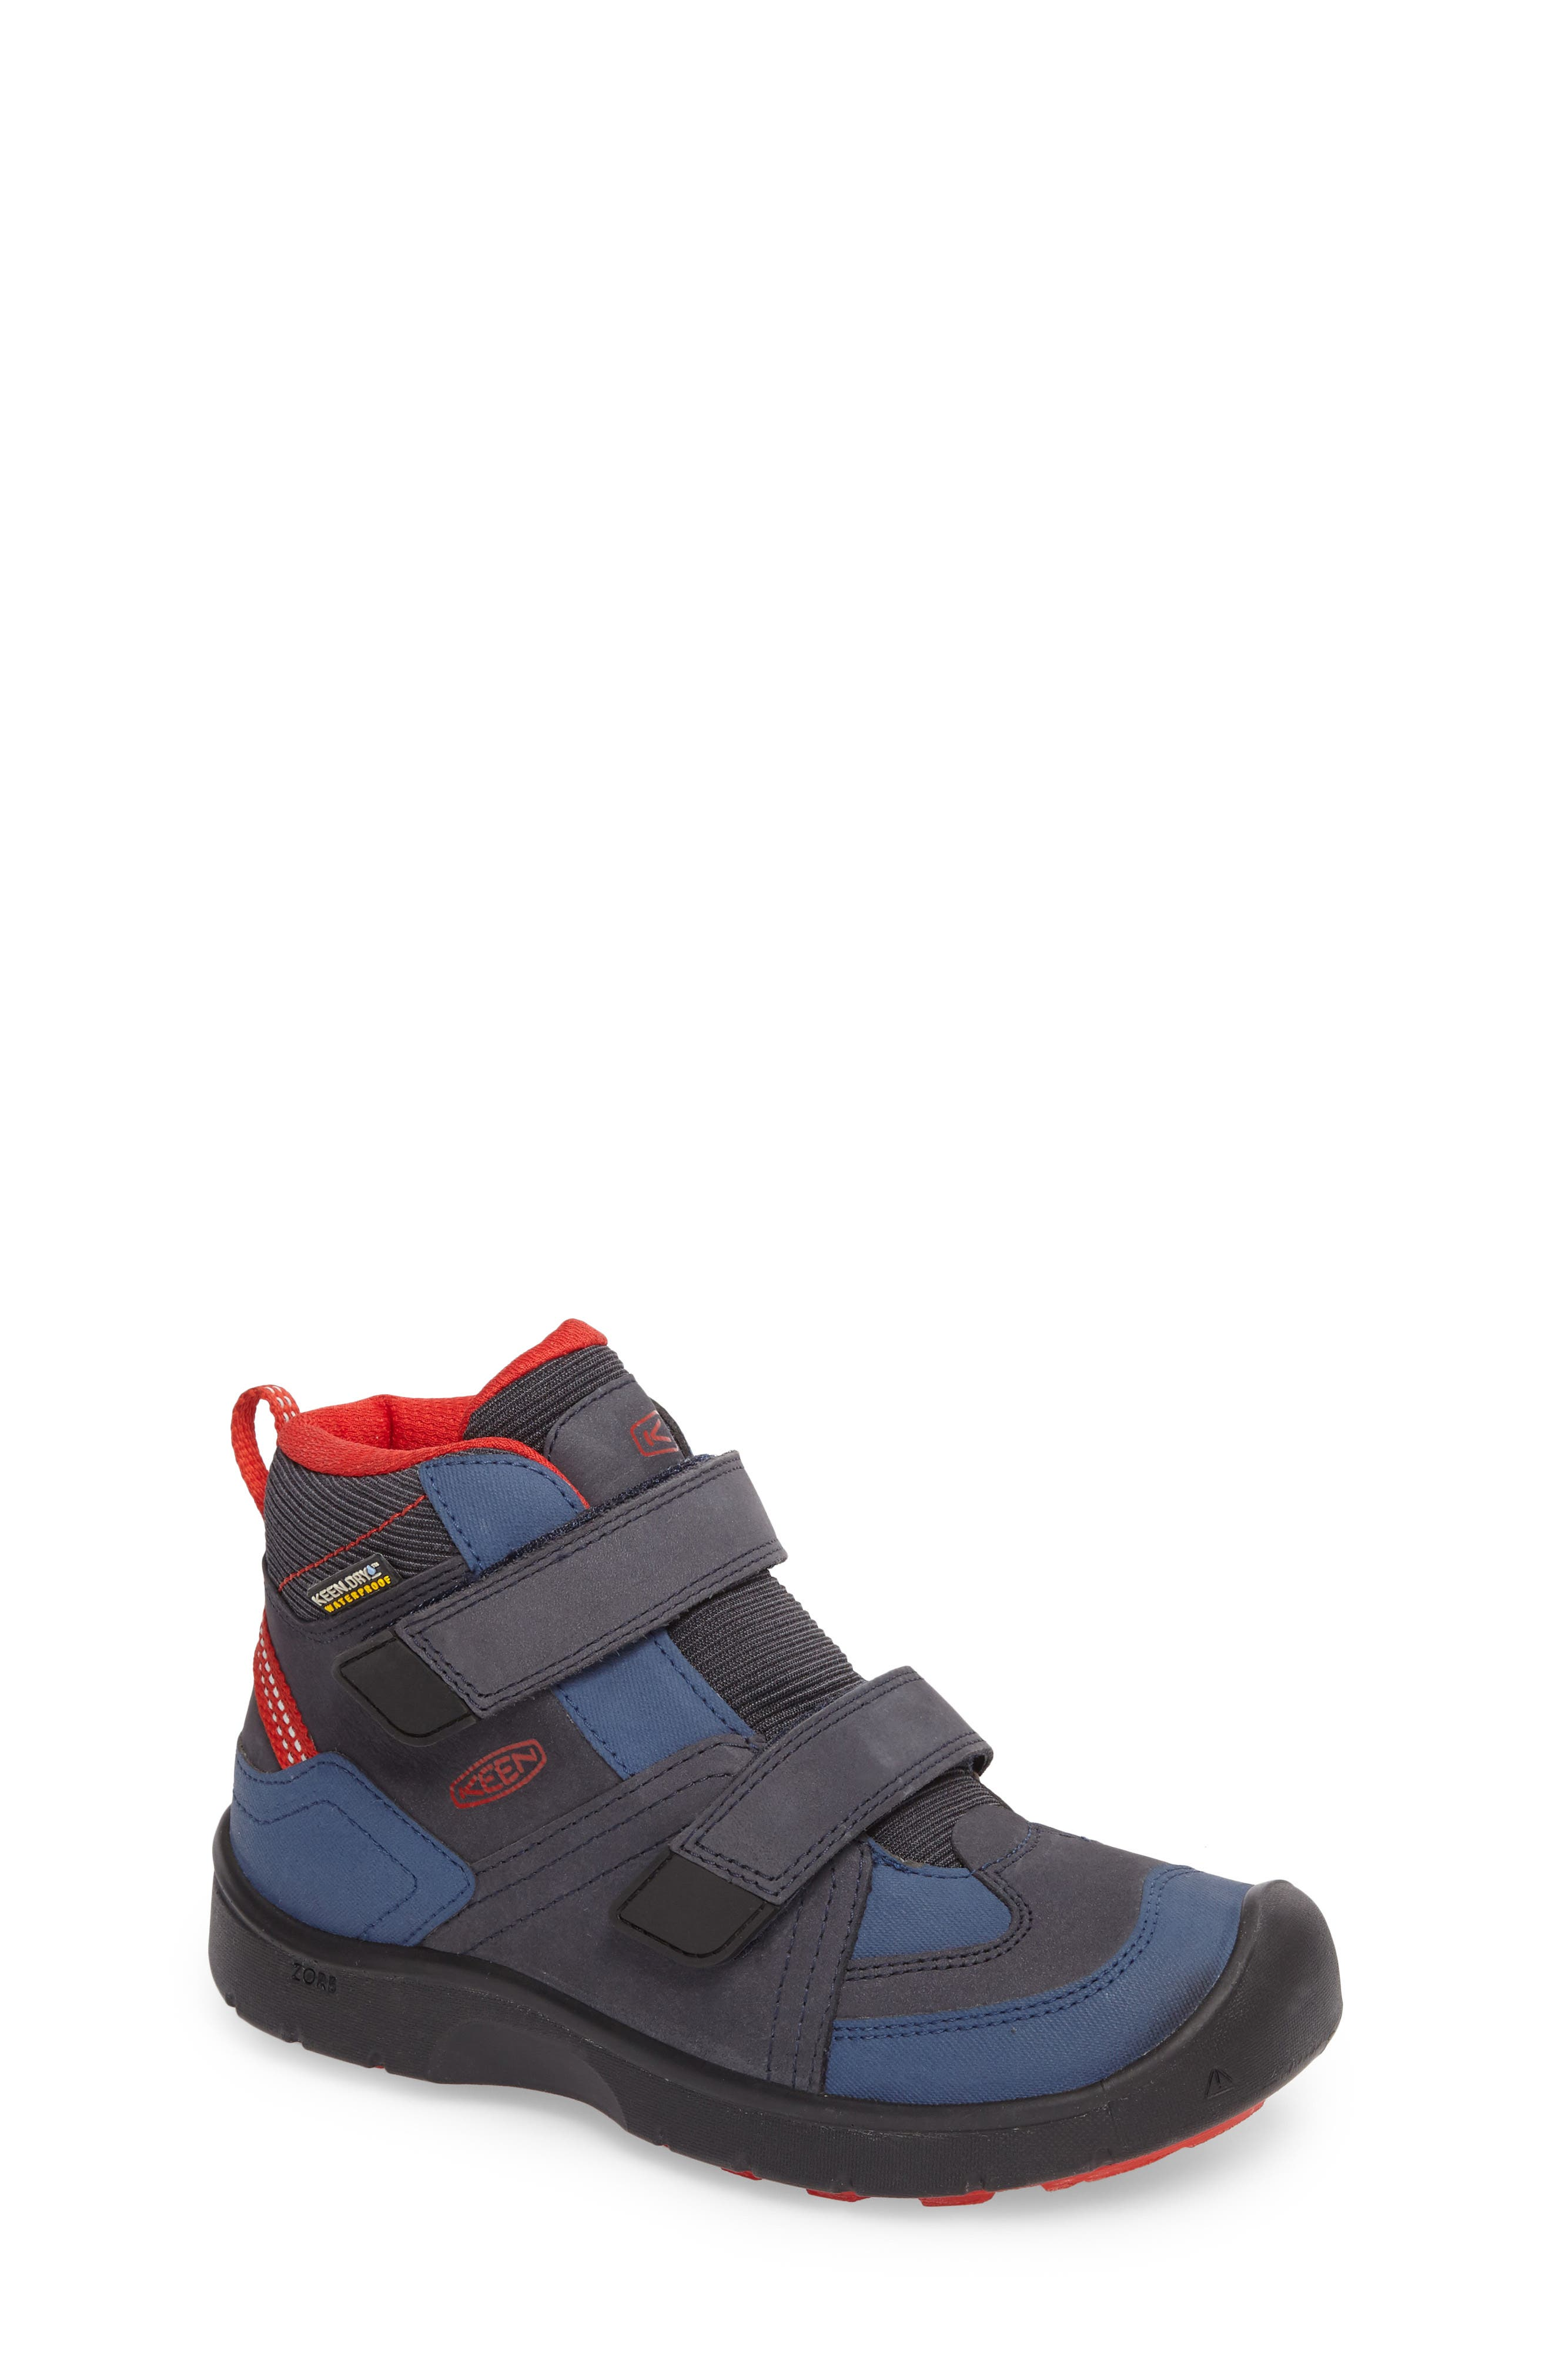 Keen Hikeport Strap Waterproof Mid Boot (Toddler, Little Kid & Big Kid)